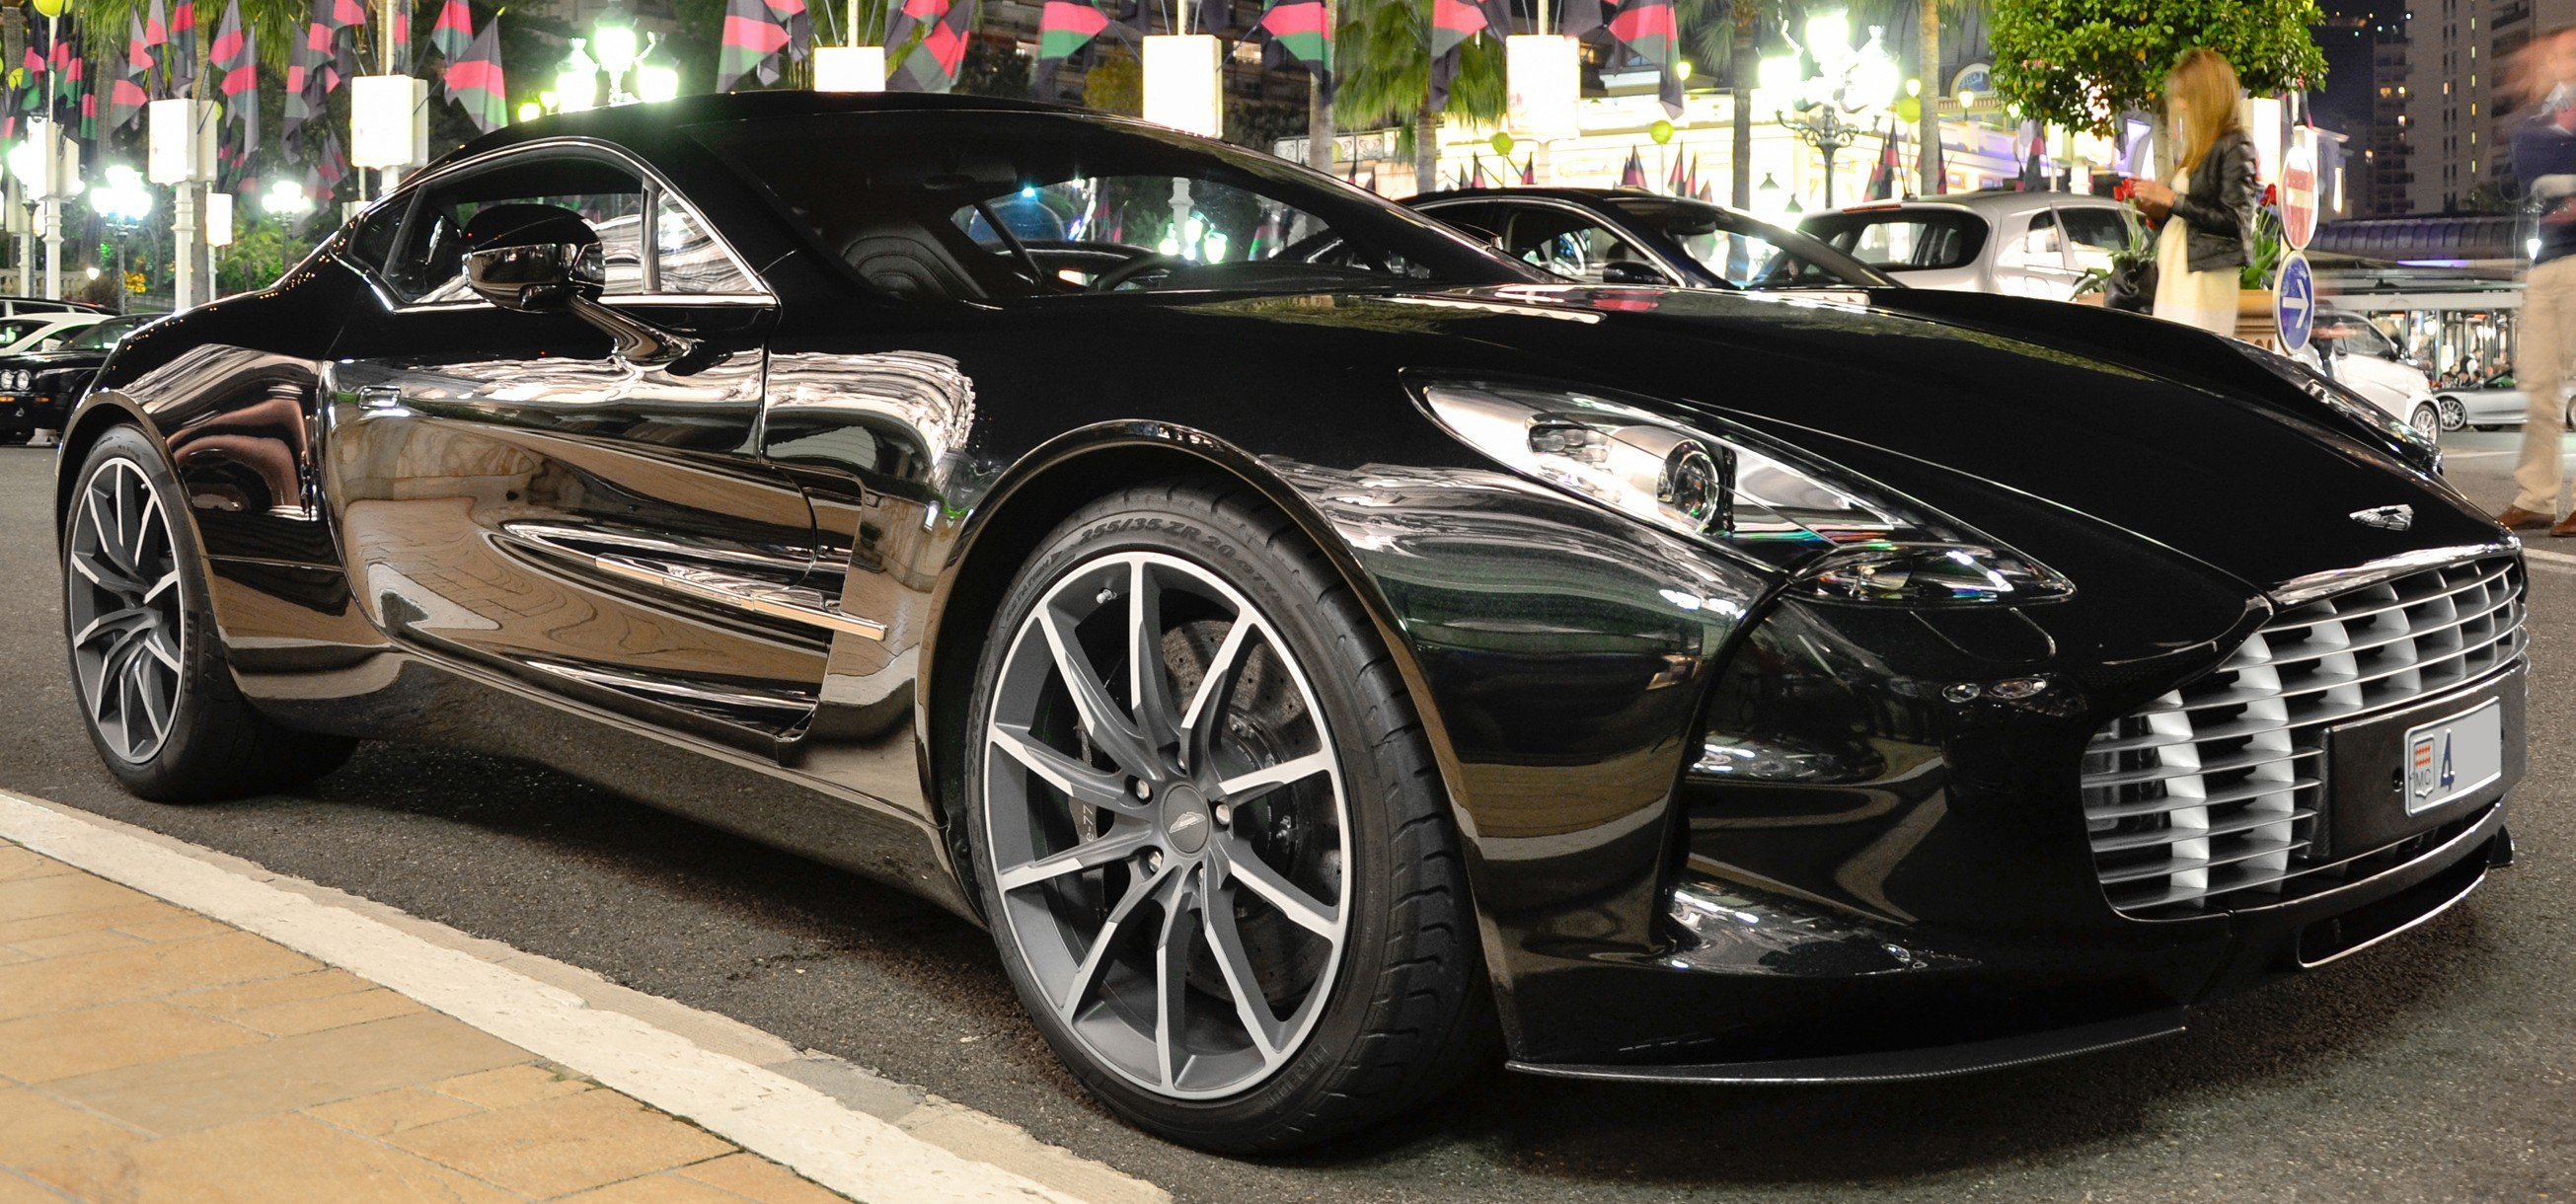 Aston Martin One-77 For Sale >> Aston Martin One 77 Could Be New Zealand S Most Expensive